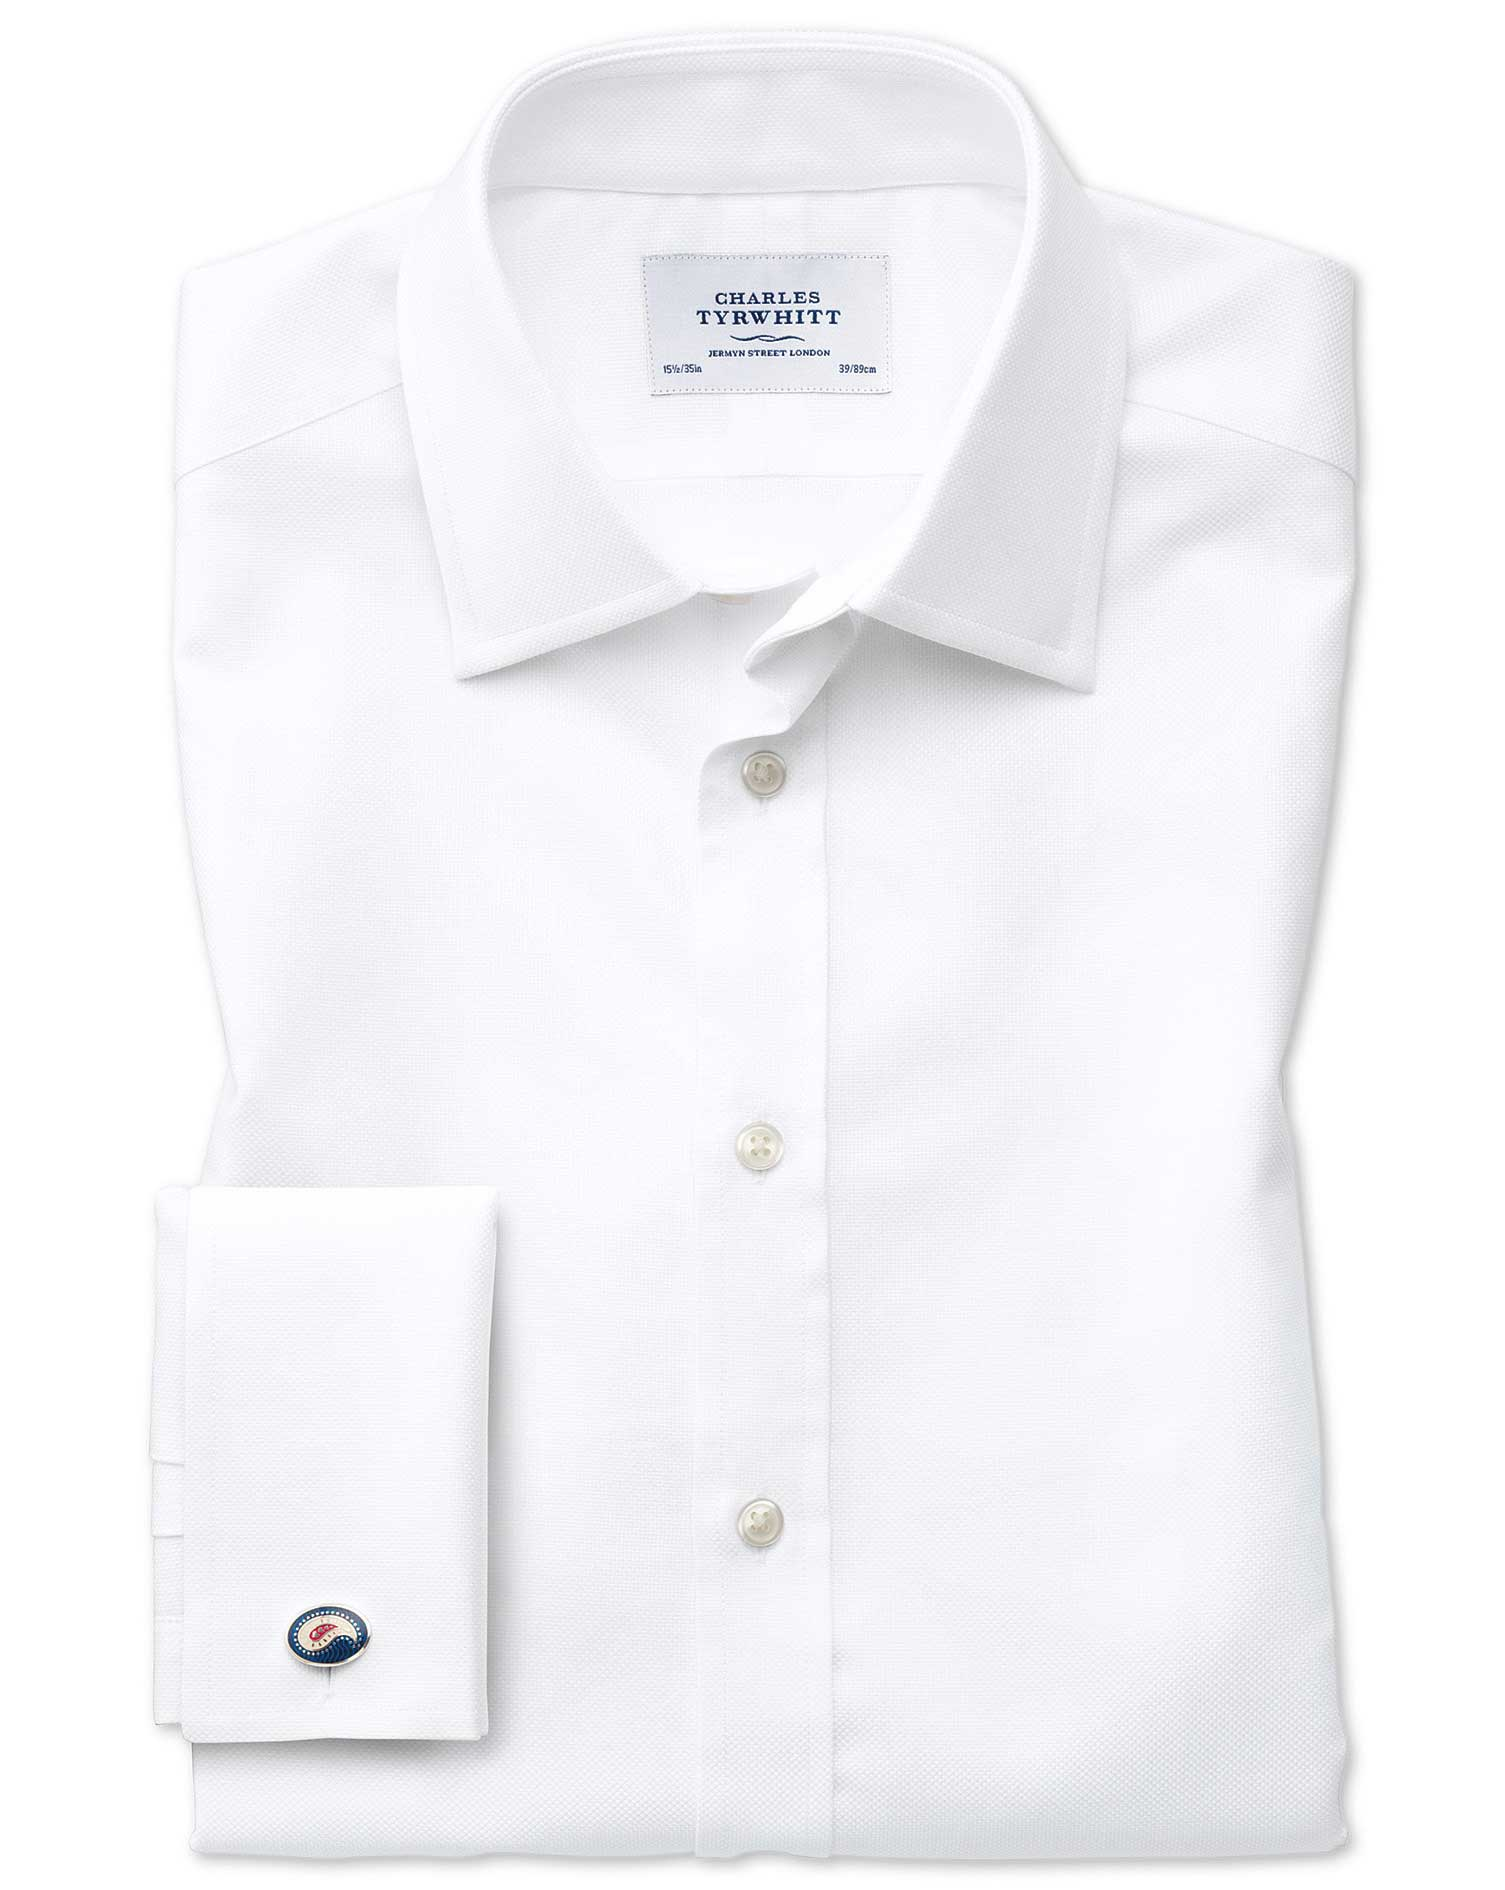 Extra Slim Fit Egyptian Cotton Royal Oxford White Formal Shirt Single Cuff Size 16.5/34 by Charles T